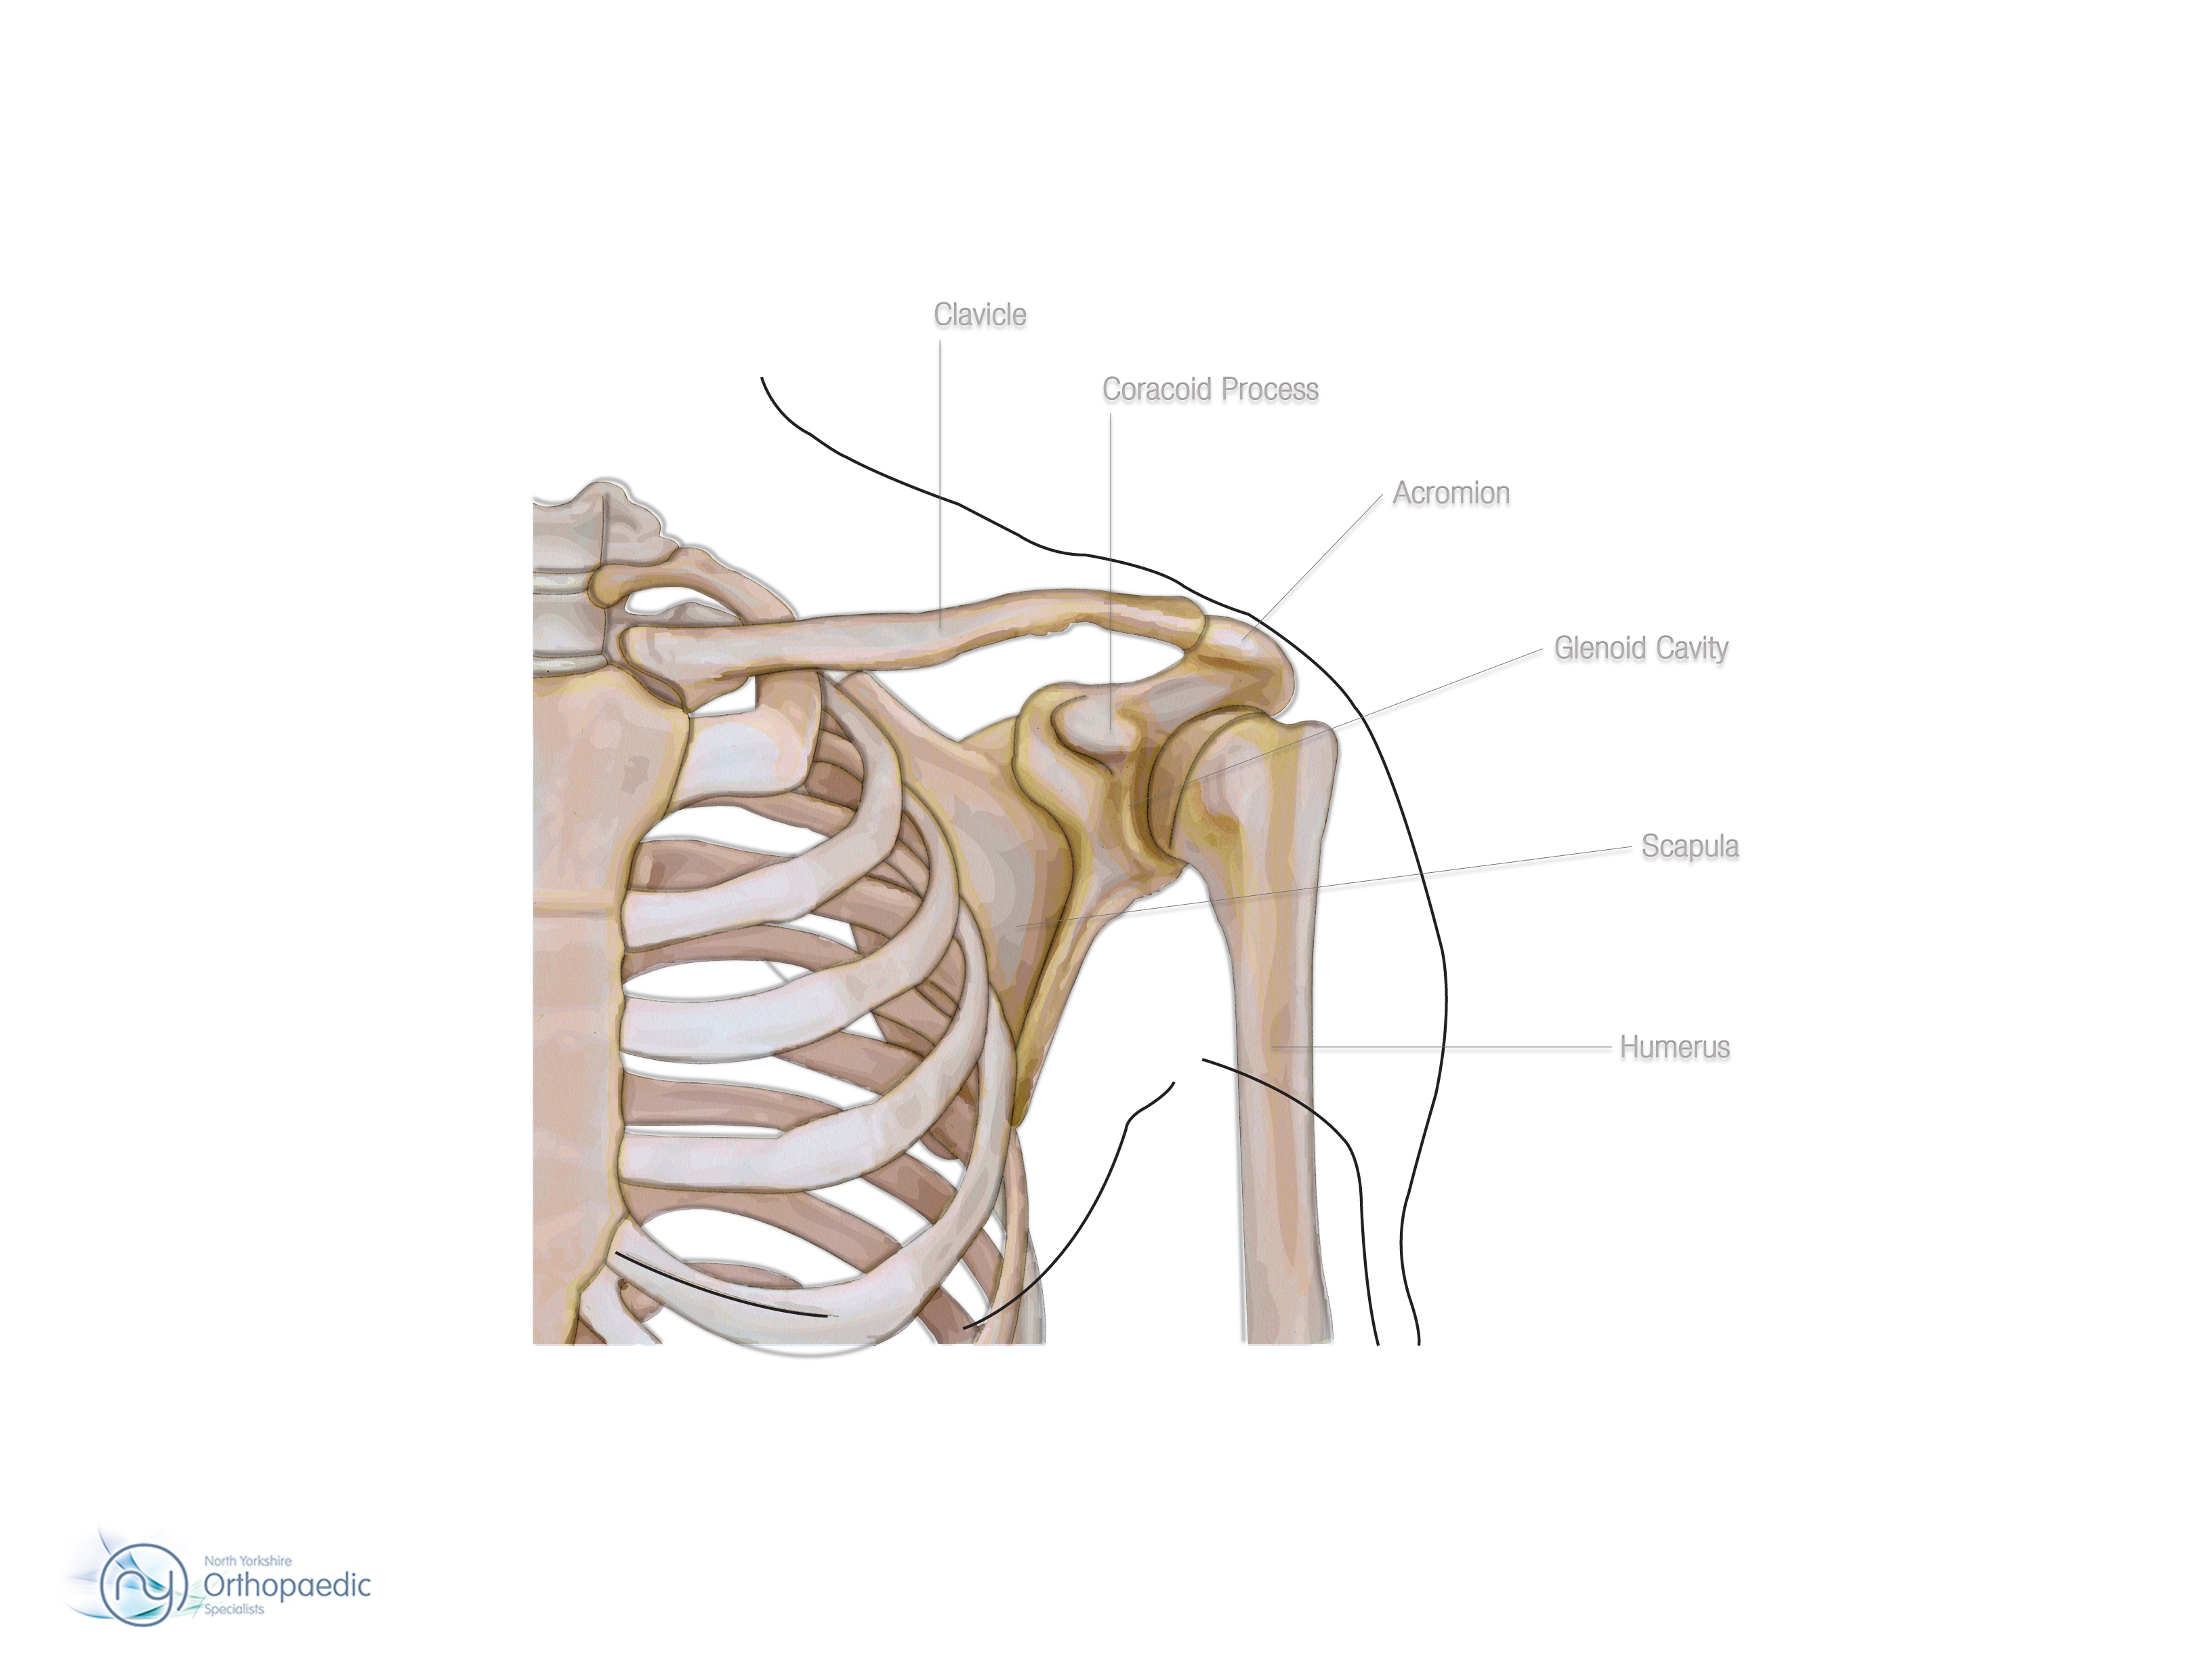 bones & joints of the shoulder | orthopaedic - simon boyle, Cephalic Vein